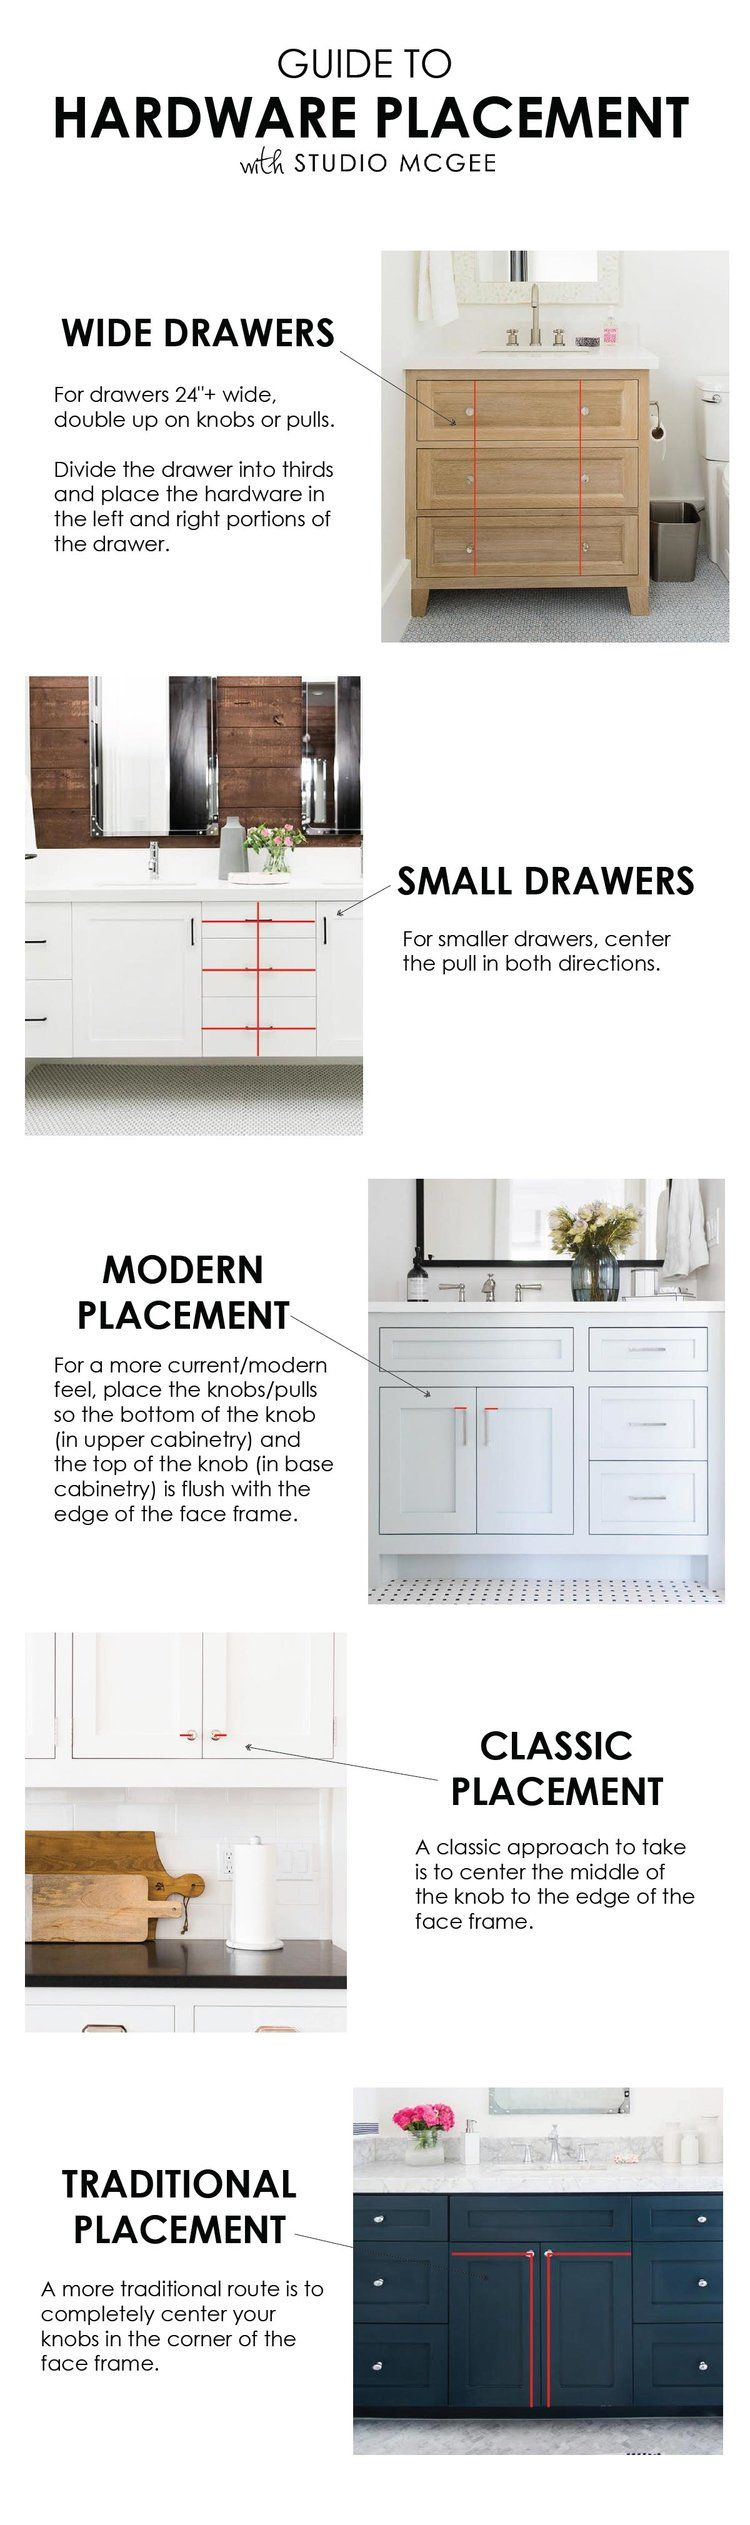 Cabinet Hardware Placement Guide Studio Mcgee Cabinet Hardware Placement Kitchen Remodeling Projects Home